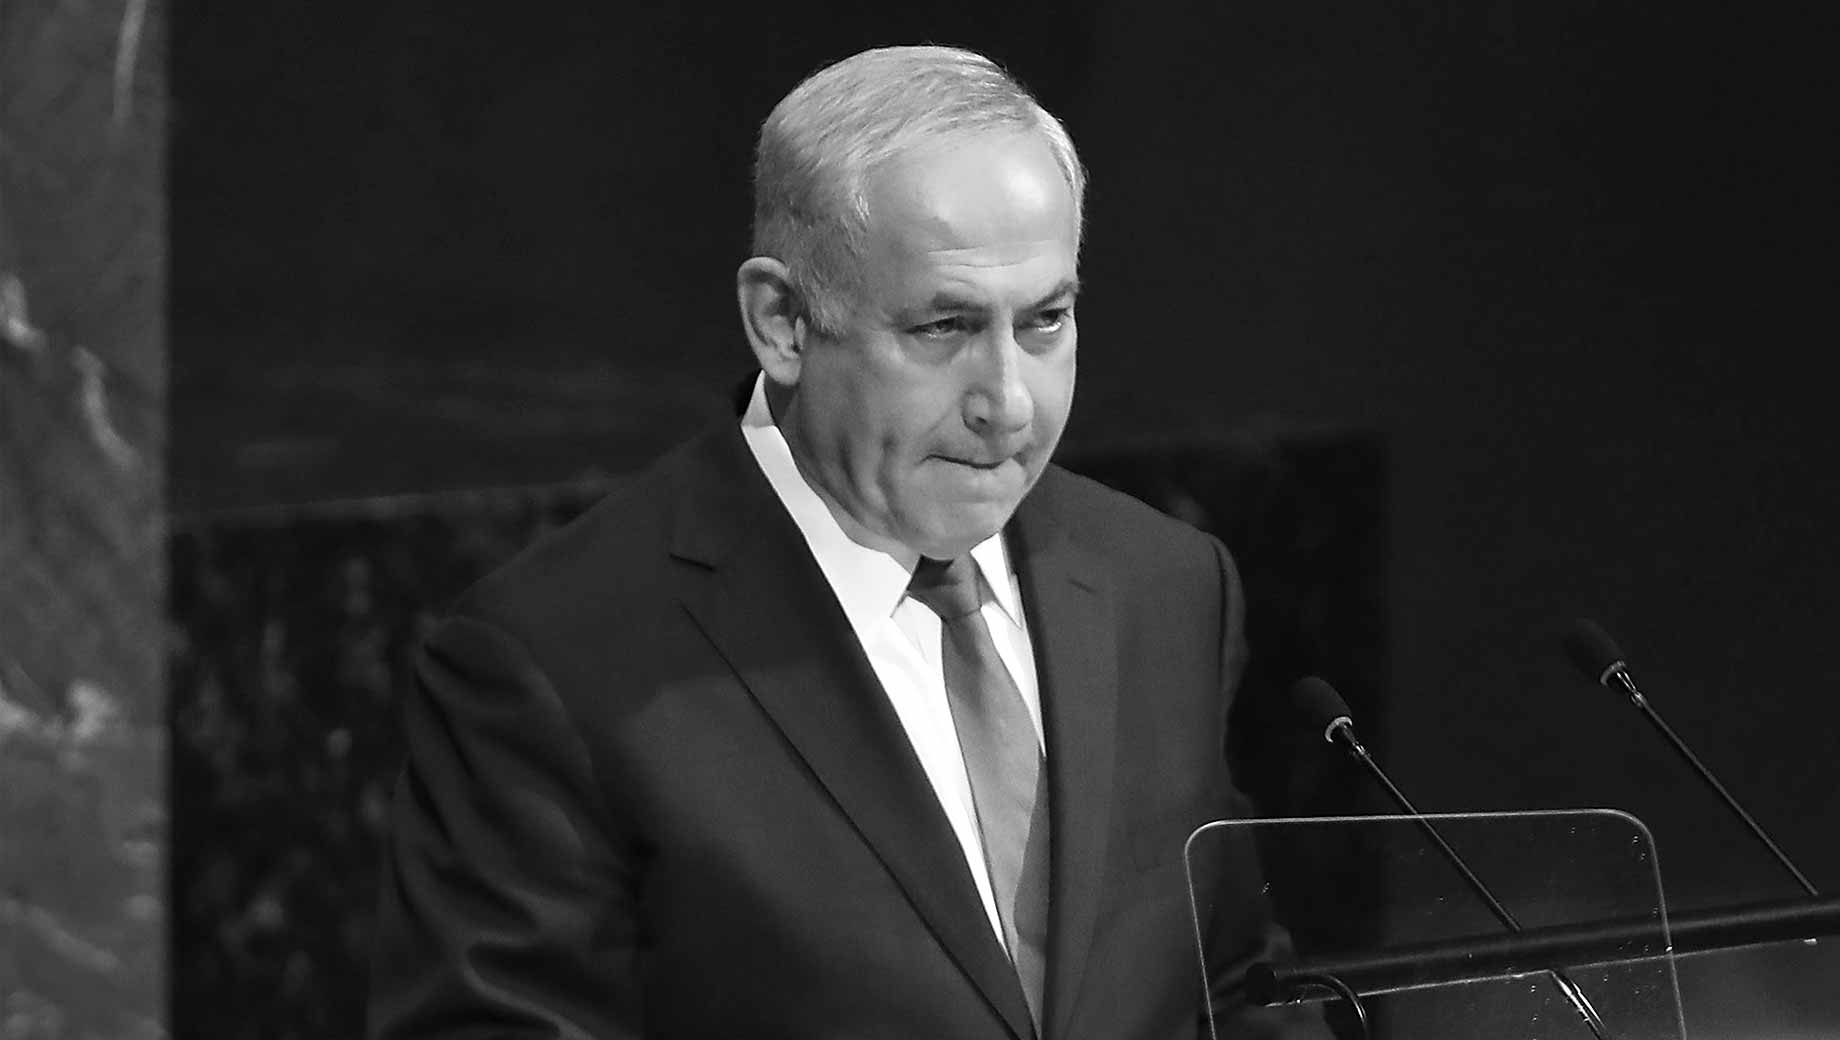 Corruption Allegations Fail to Dent Netanyahu's Popularity